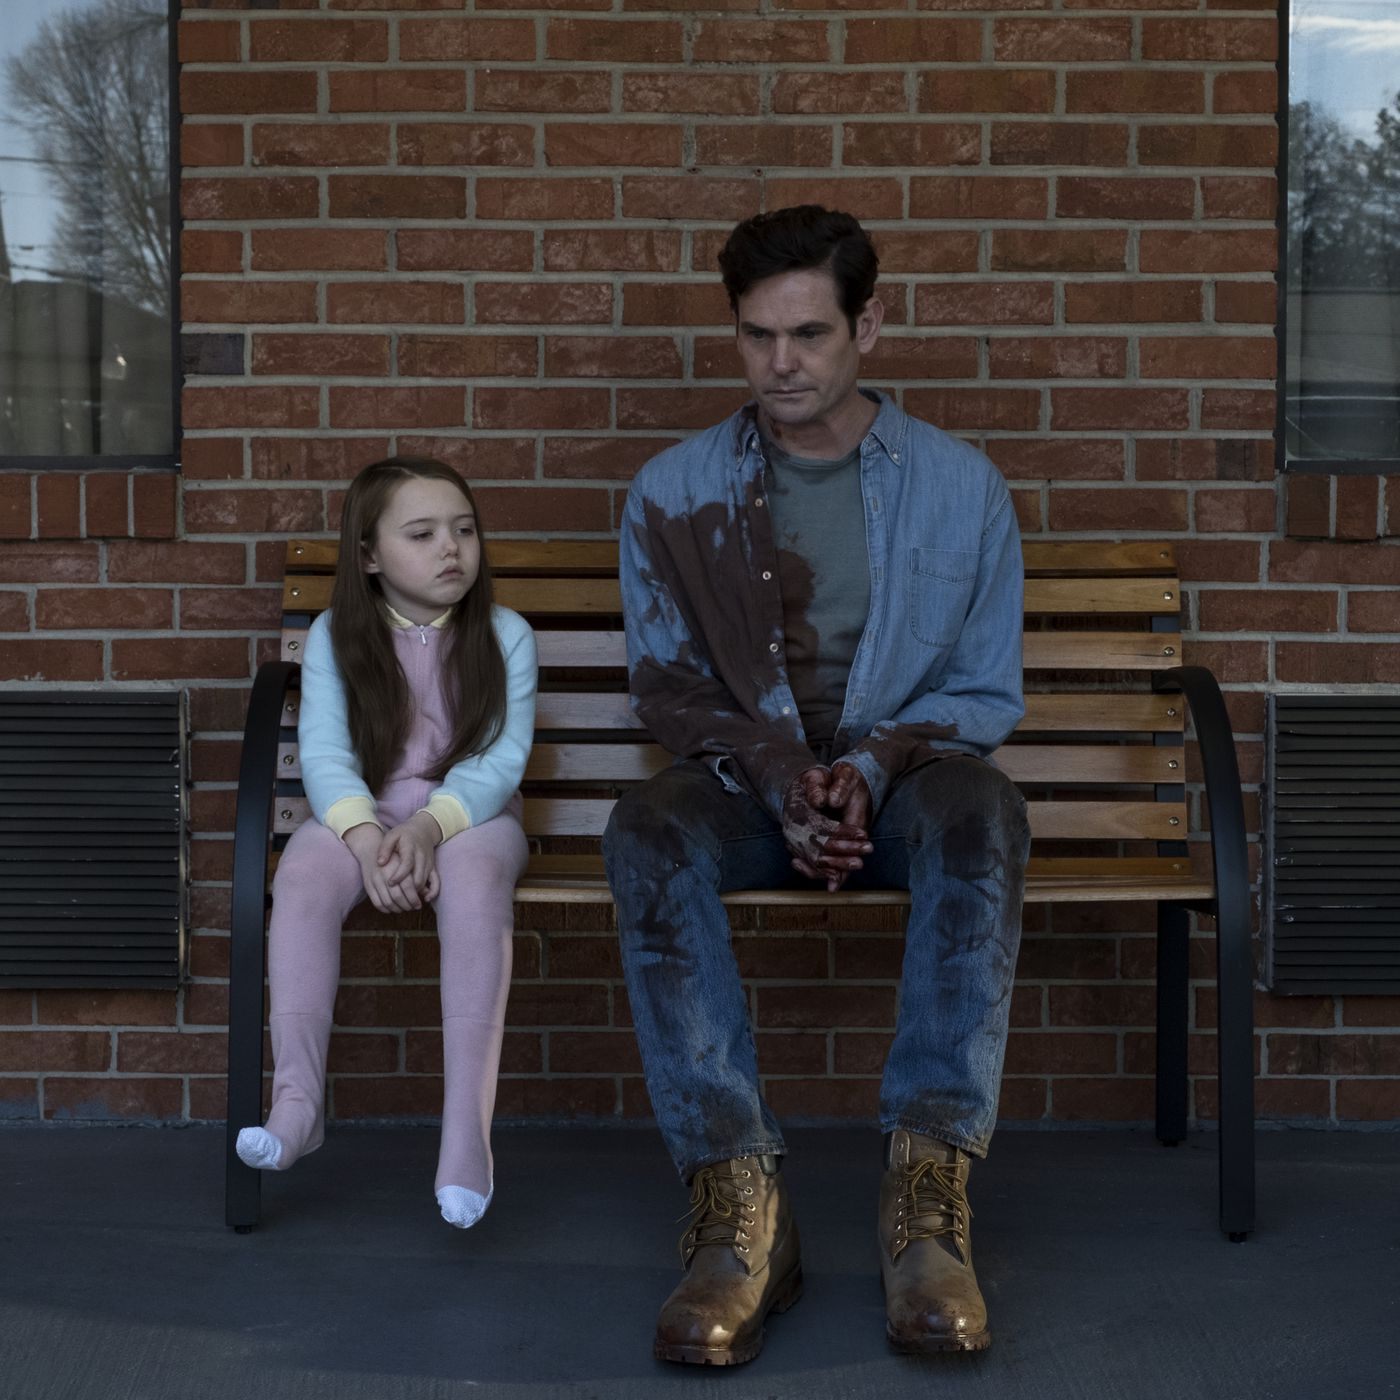 Netflix S Haunting Of Hill House Is Like This Is Us Wrapped In A Gothic Ghost Story The Verge